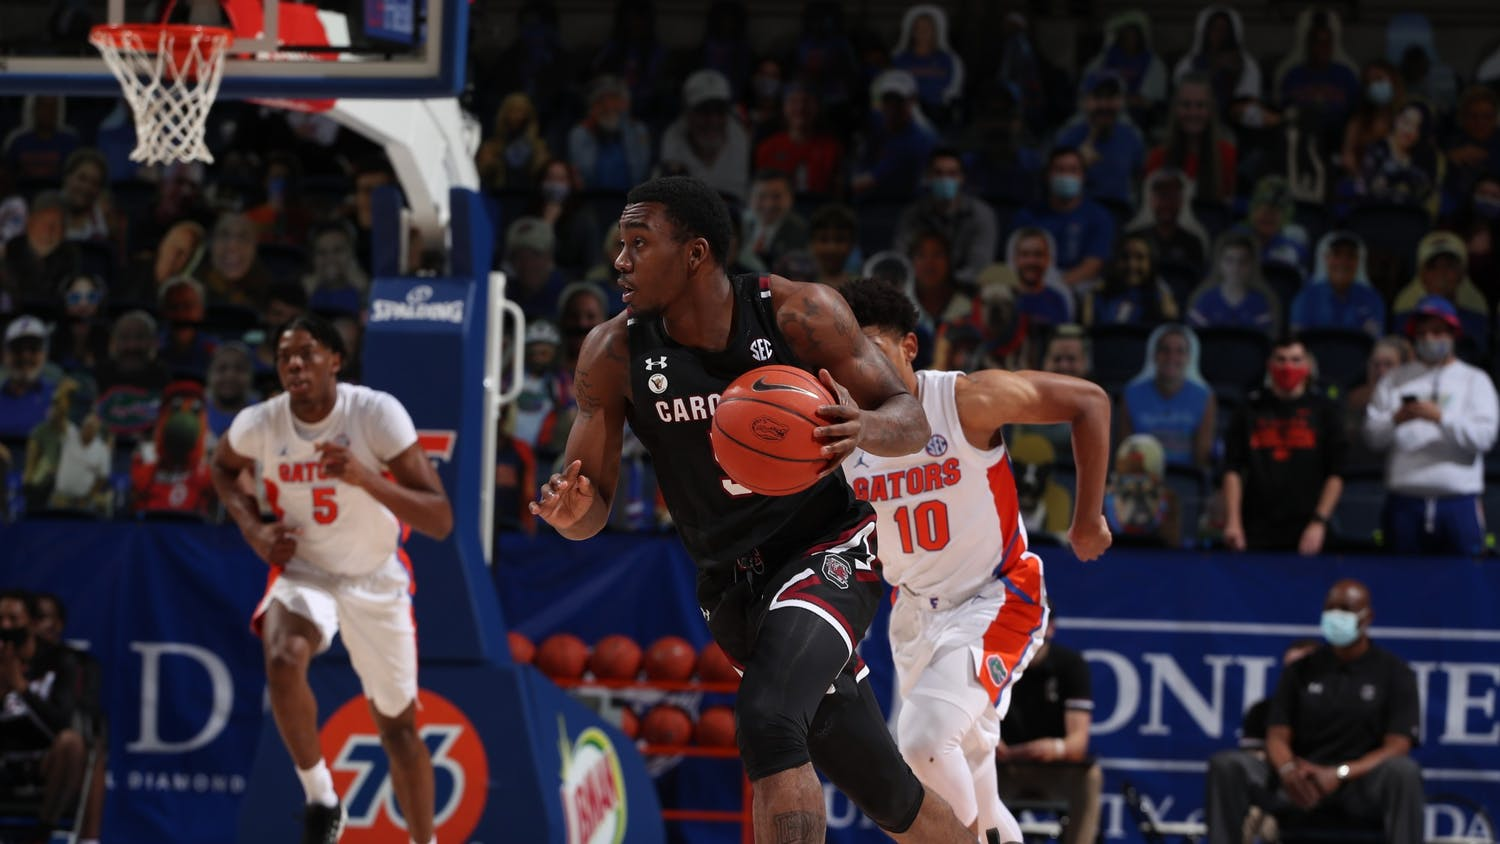 Redshirt sophomore, Jermaine Couisnard, dribbles the ball down the court as a Florida Gators player runs after him. South Carolina won the game 72-66 on Feb. 3, 2021.